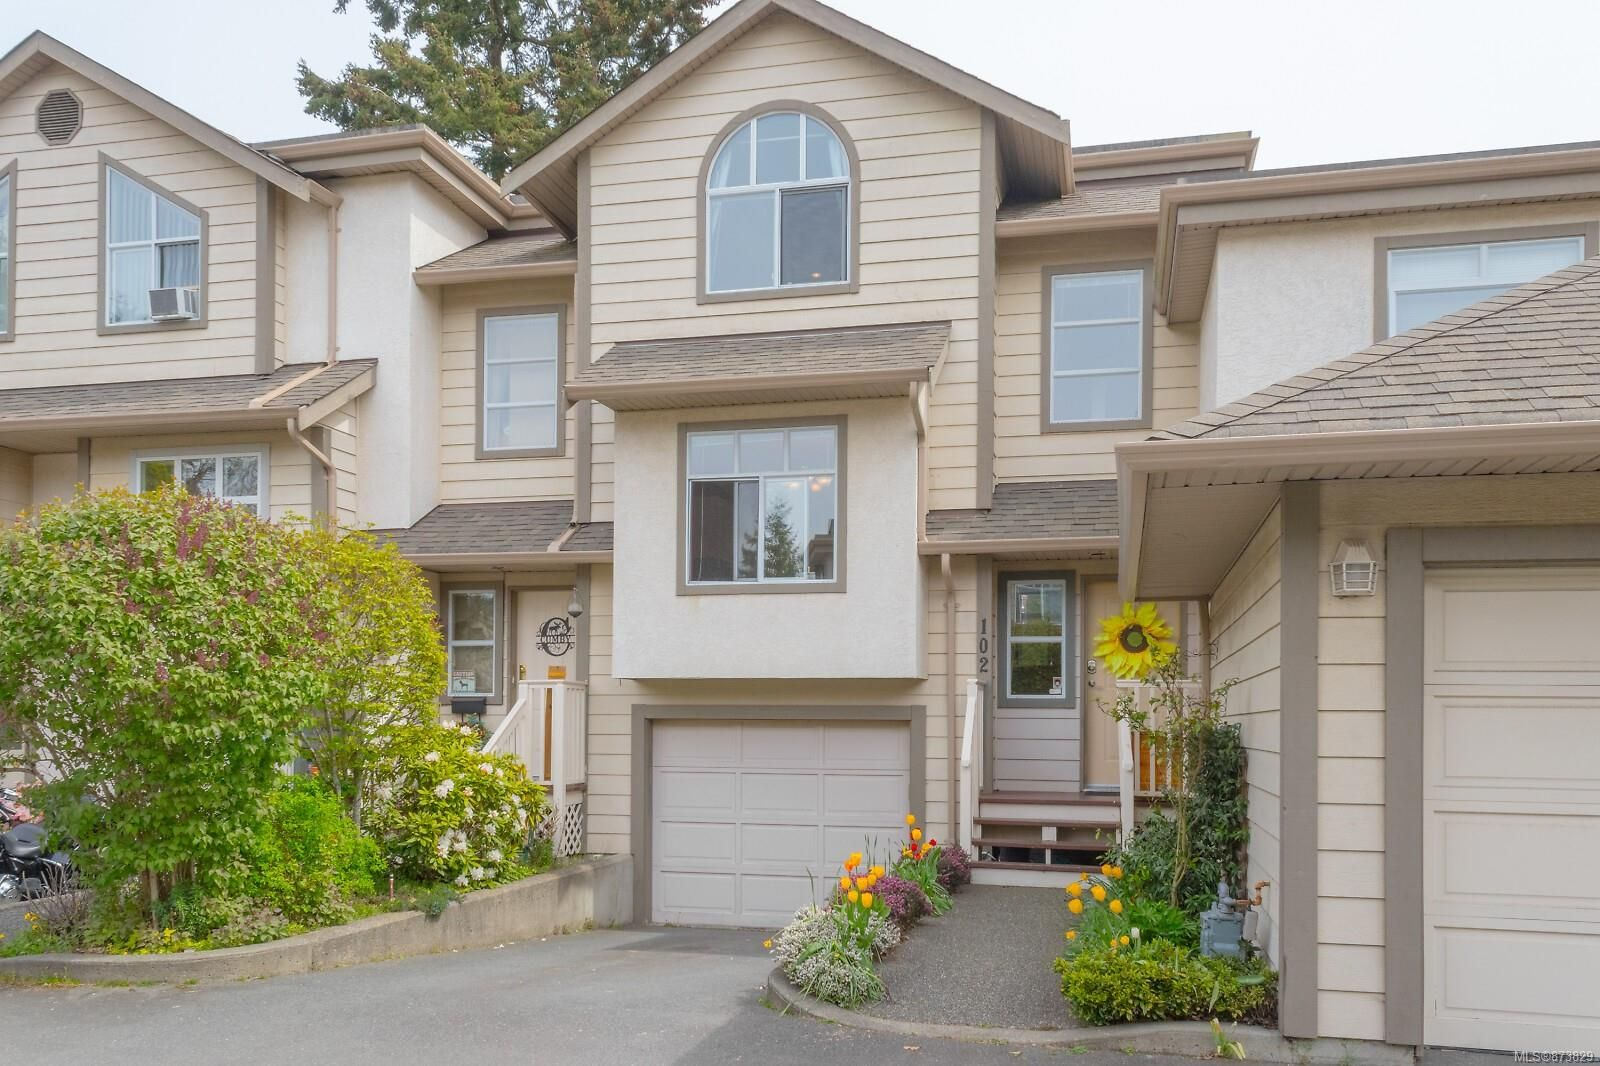 Main Photo: 102 710 Massie Dr in : La Langford Proper Row/Townhouse for sale (Langford)  : MLS®# 873829